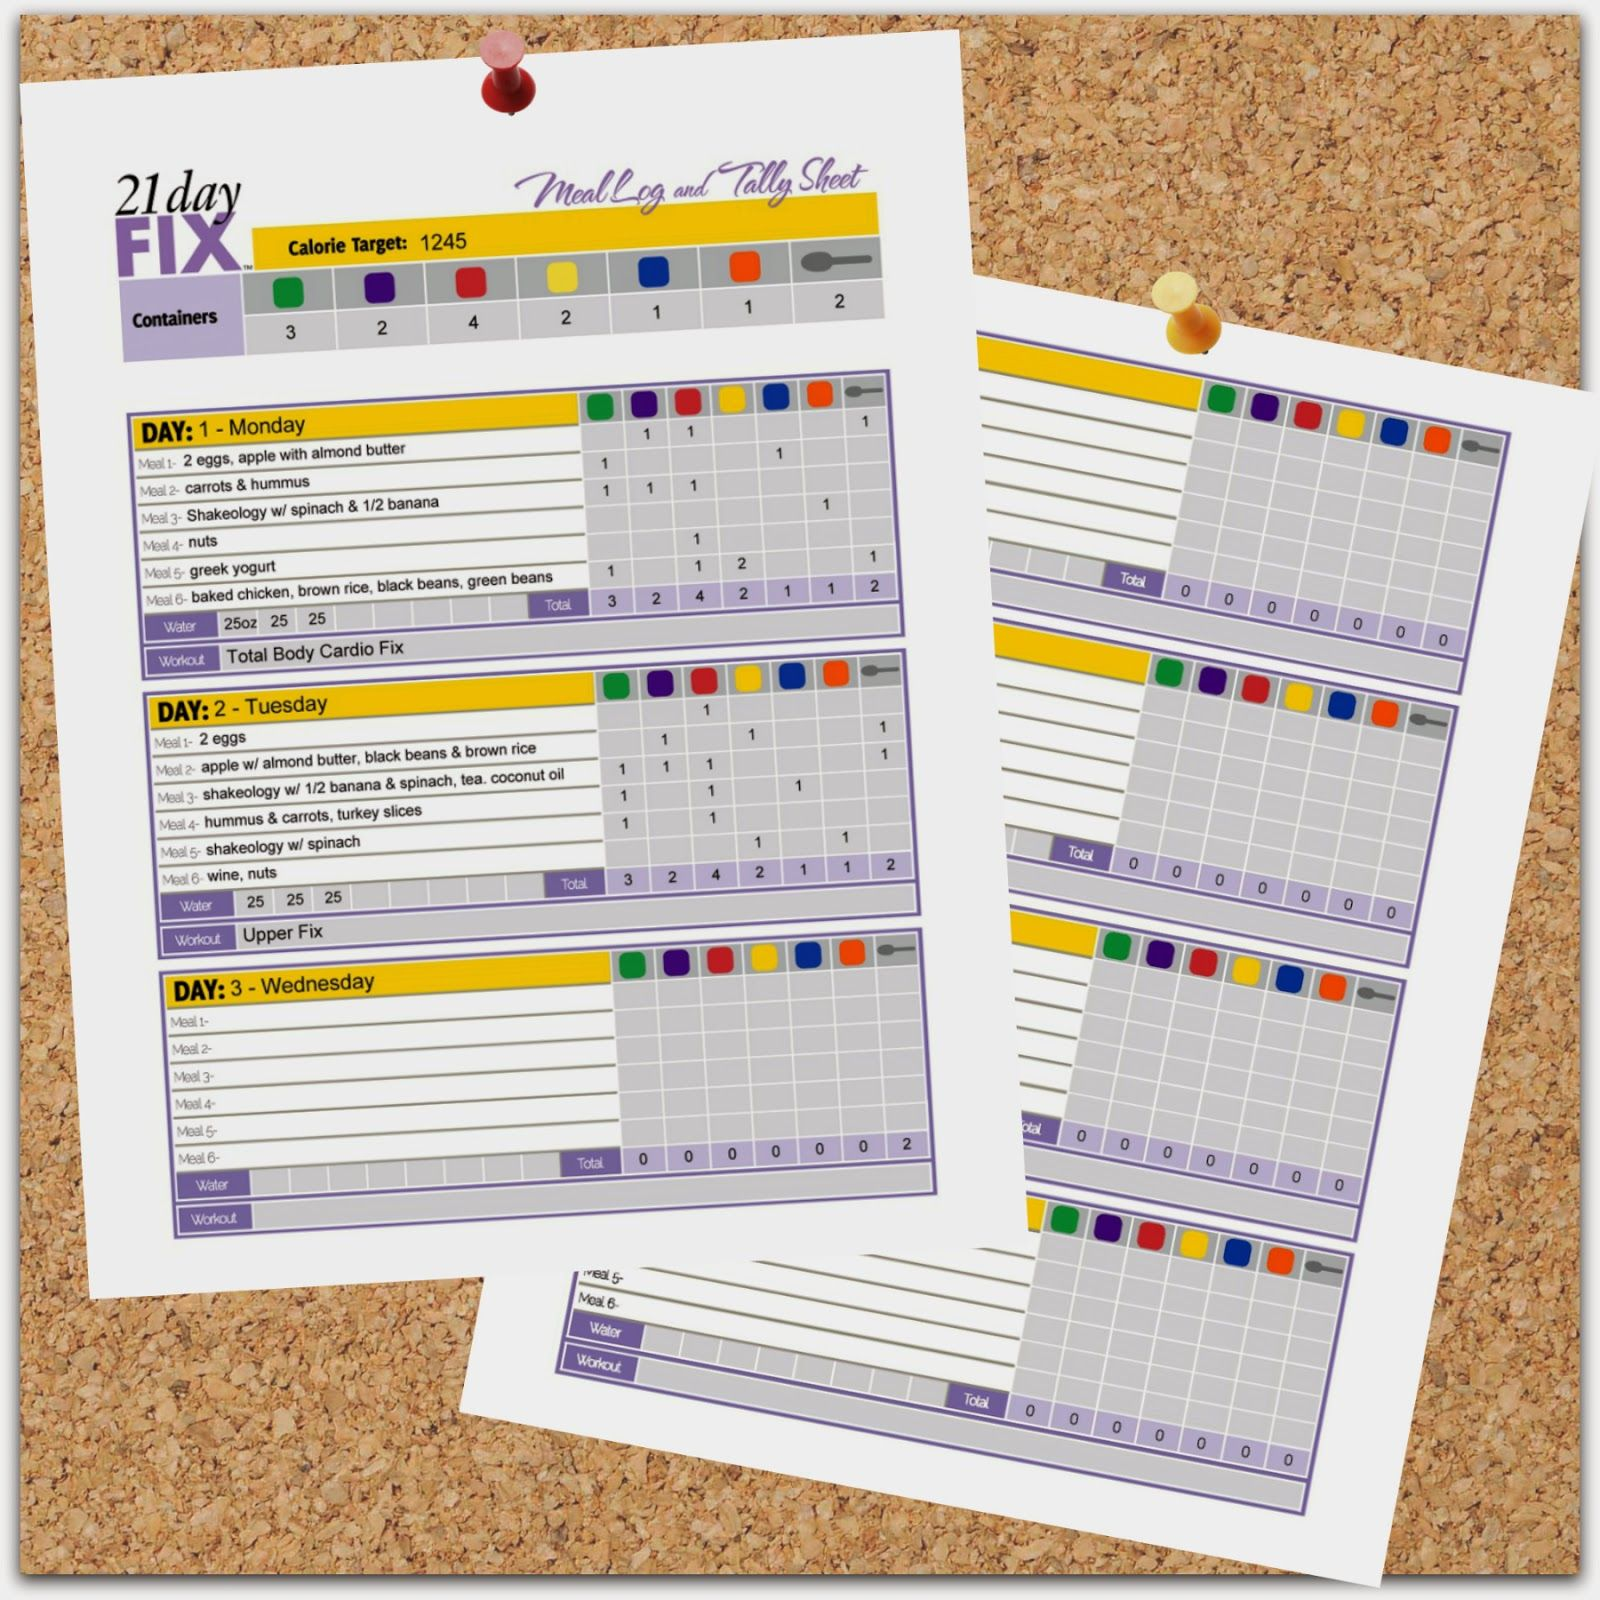 21 Day Fix Meal Log and Tally Sheet--love that I can download this ...